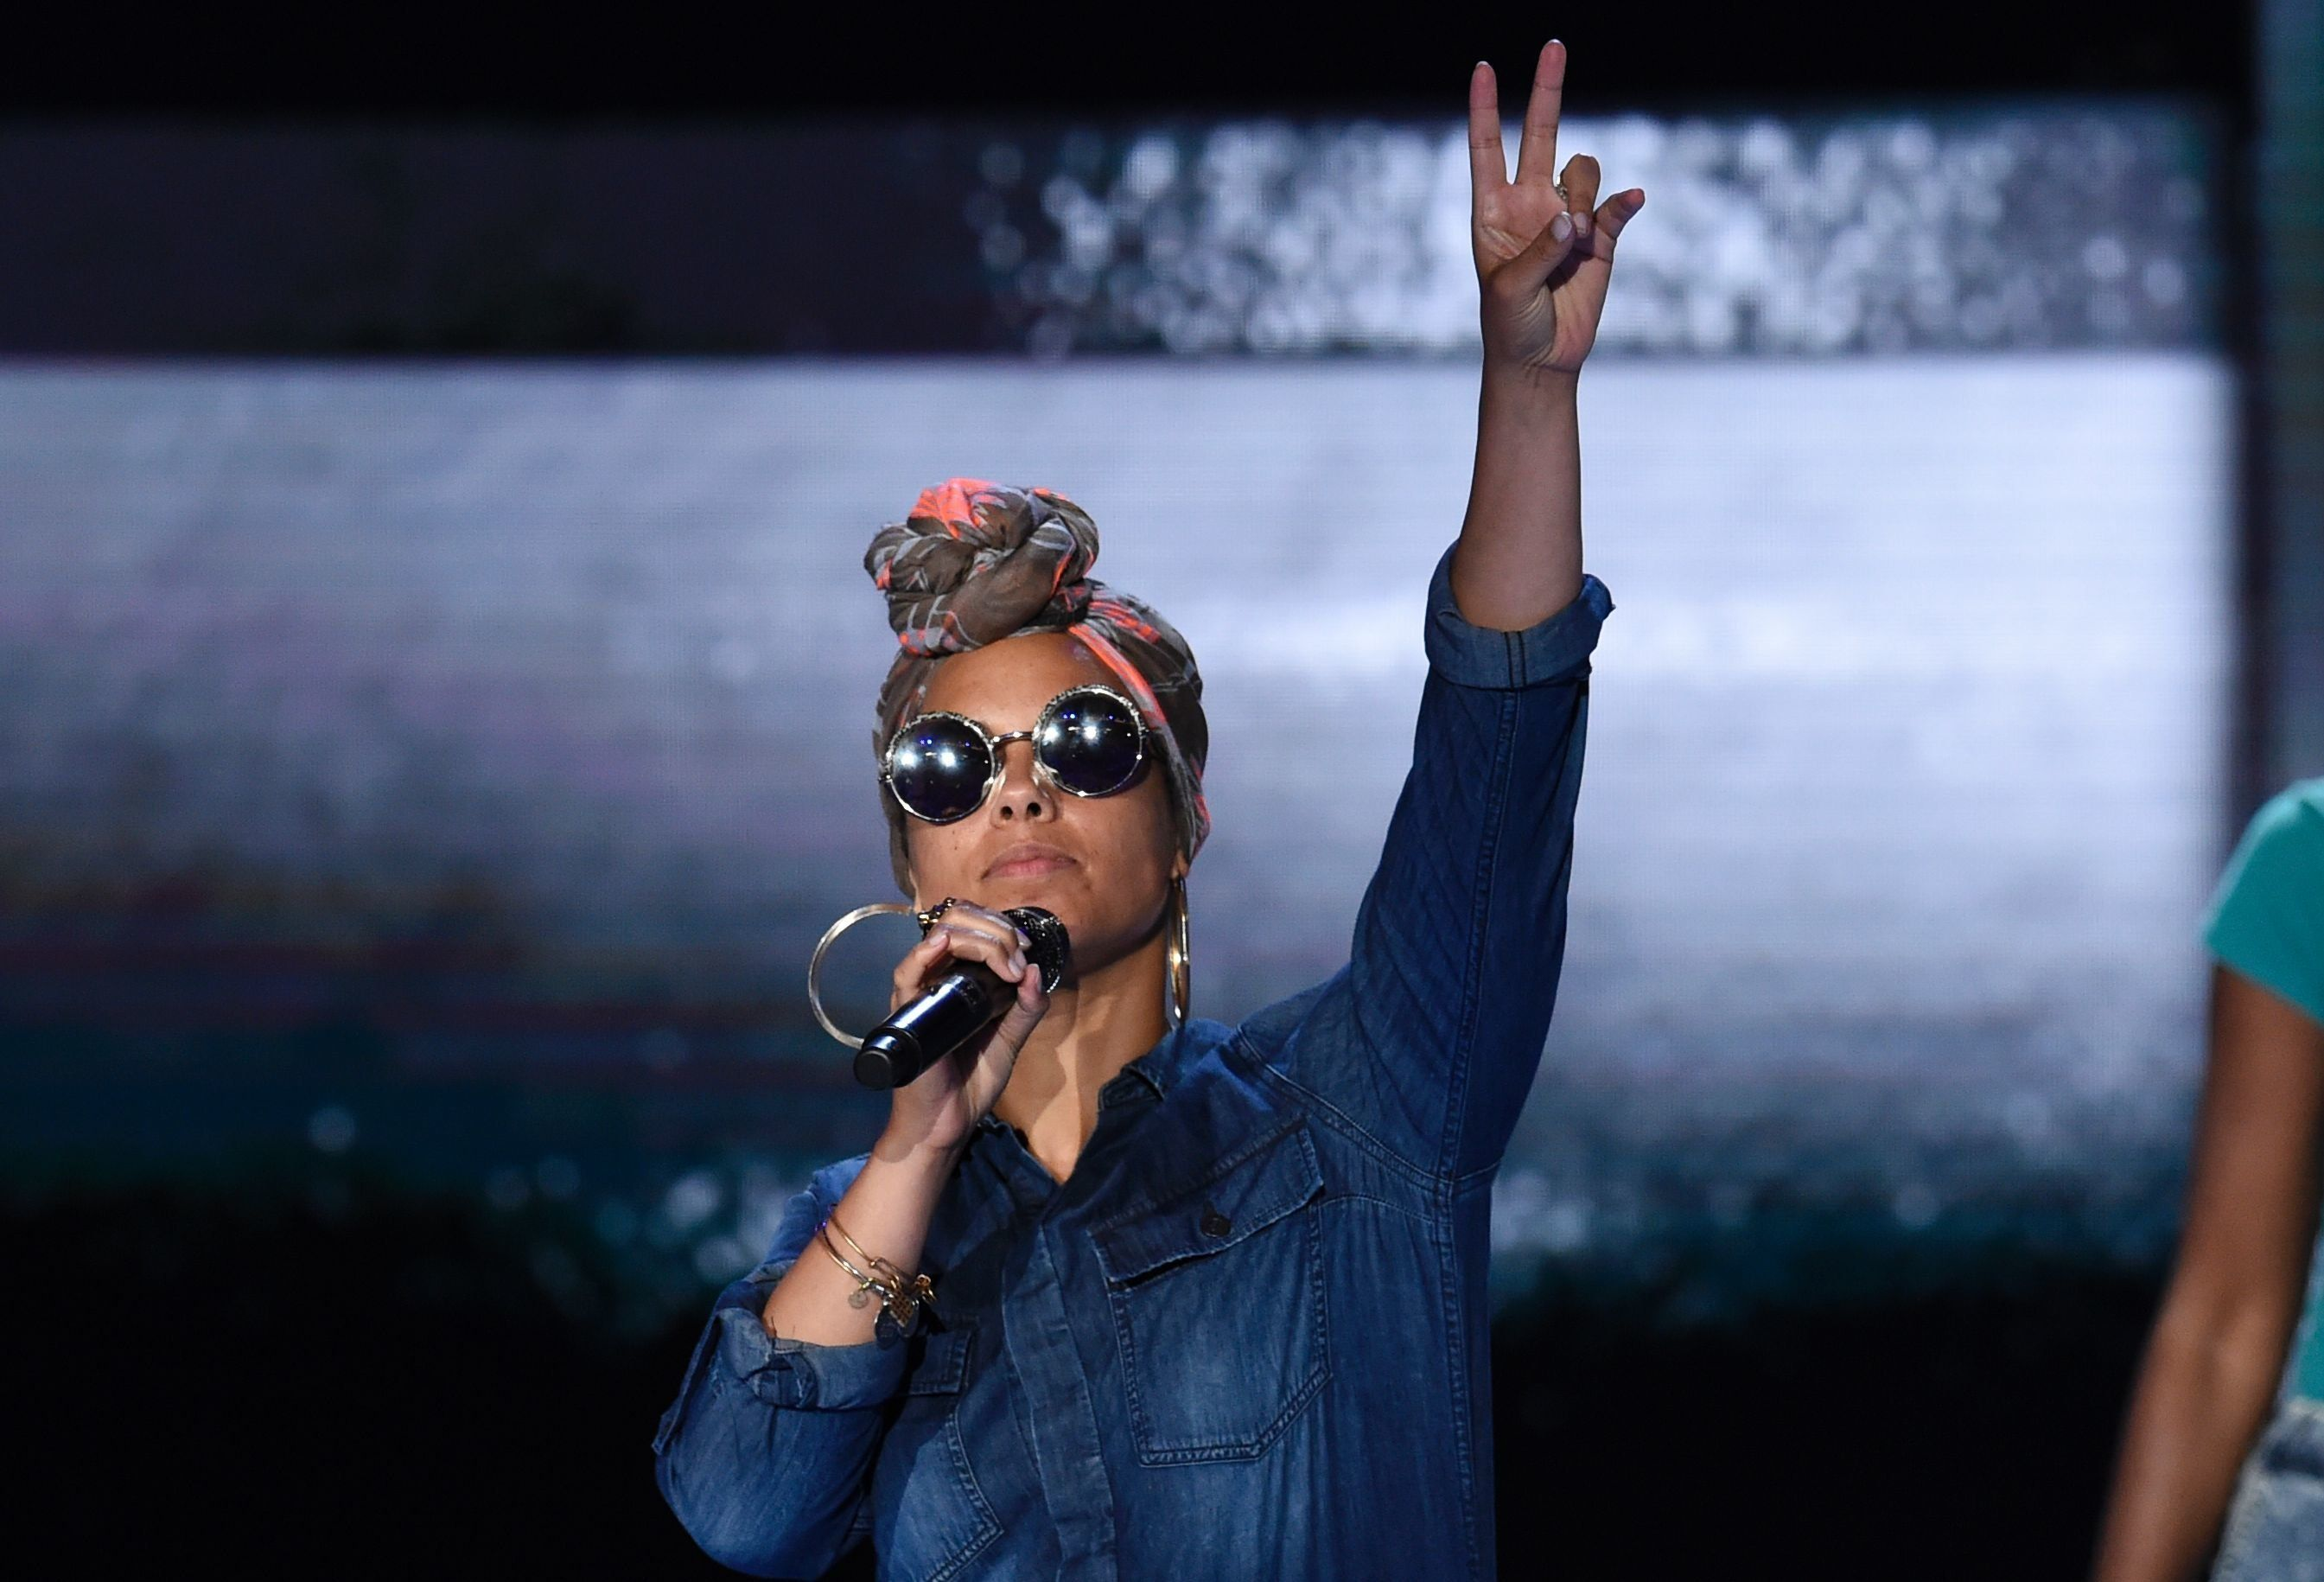 Alicia Keys rehearses on stage prior to the start of Day 2 of the Democratic National Convention at the Wells Fargo Center in Philadelphia, Pennsylvania, July 26, 2016. / AFP / SAUL LOEB        (Photo credit should read SAUL LOEB/AFP/Getty Images)